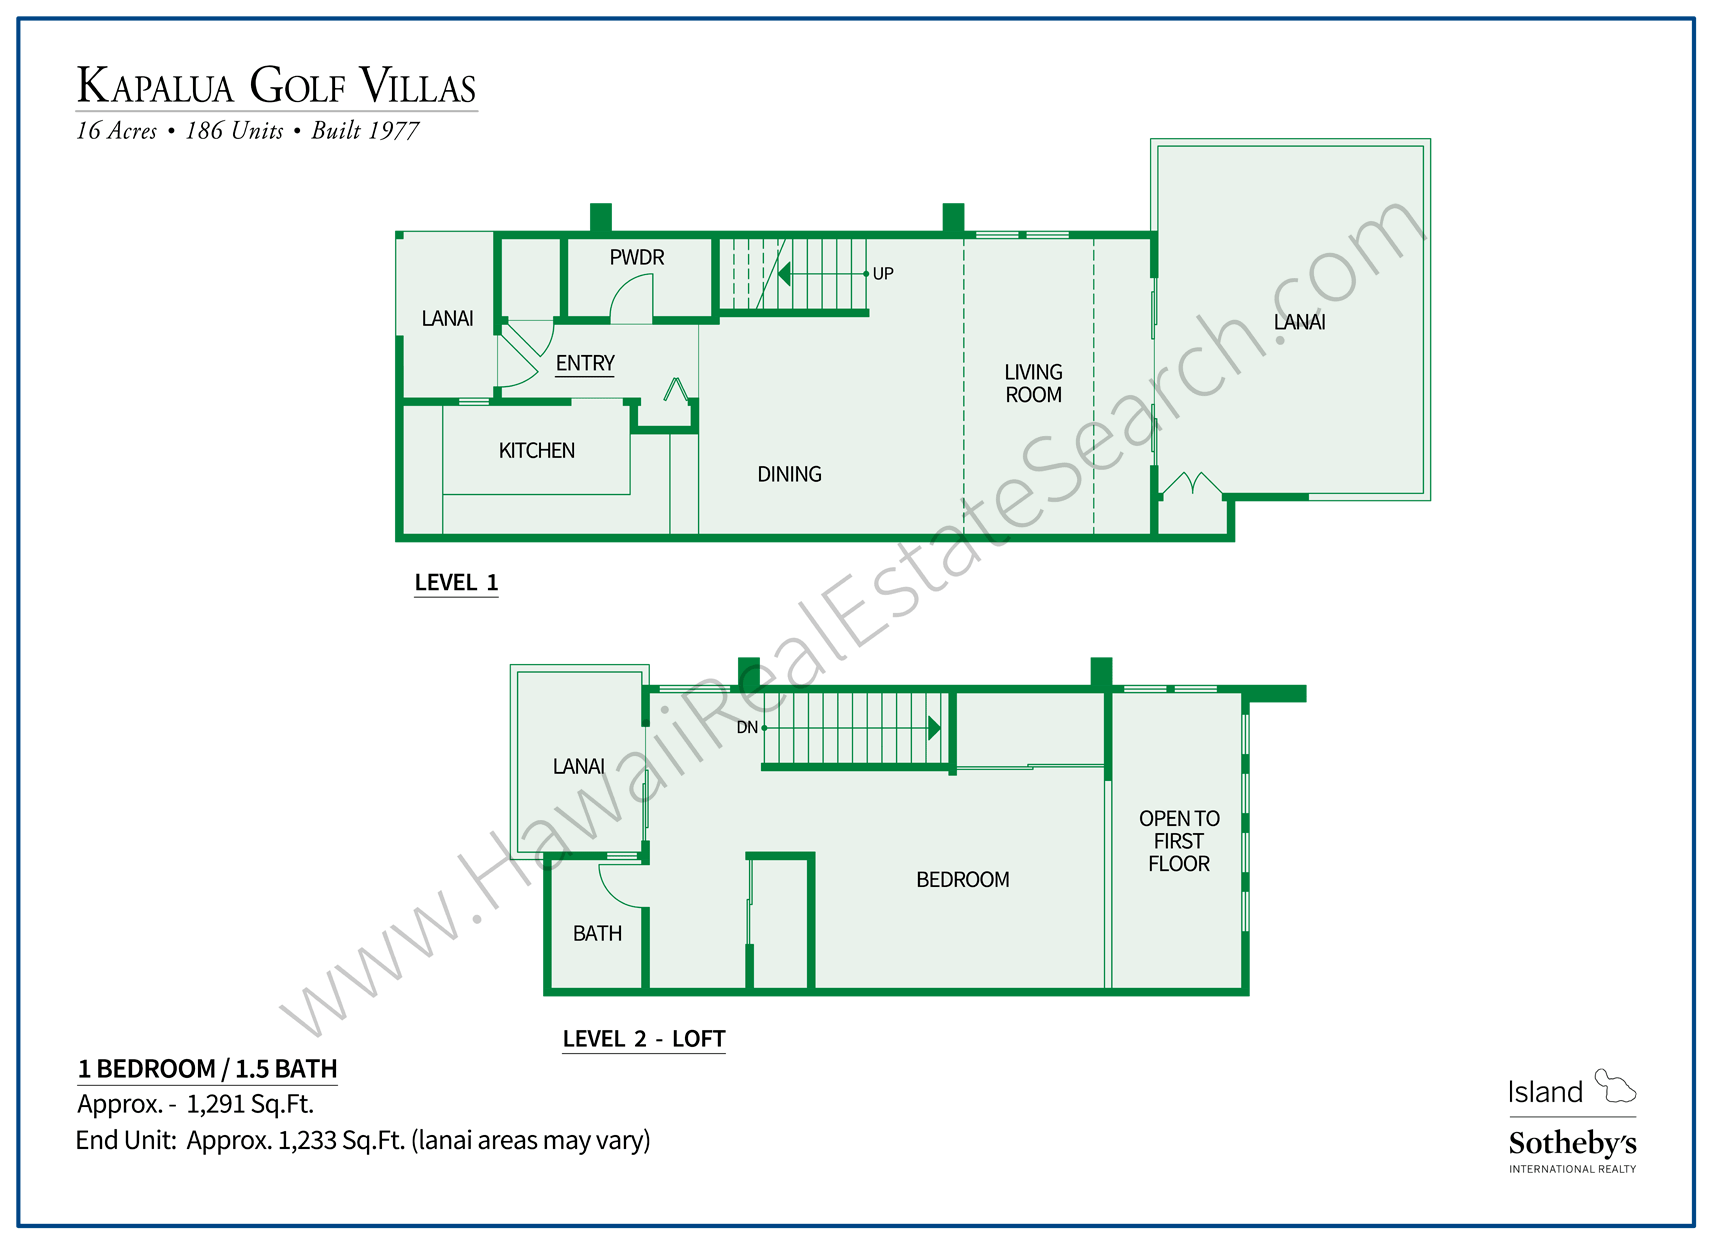 Kapalua Golf Villas Floor Plan 2